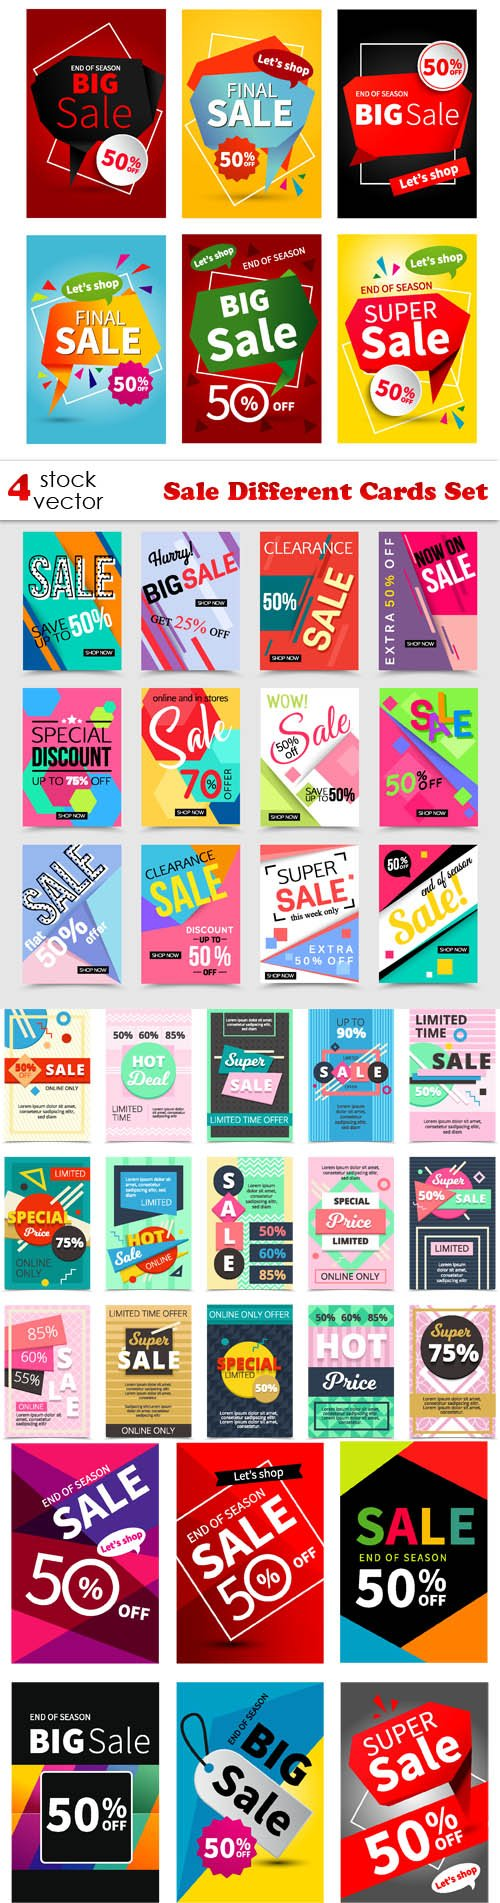 Vectors - Sale Different Cards Set